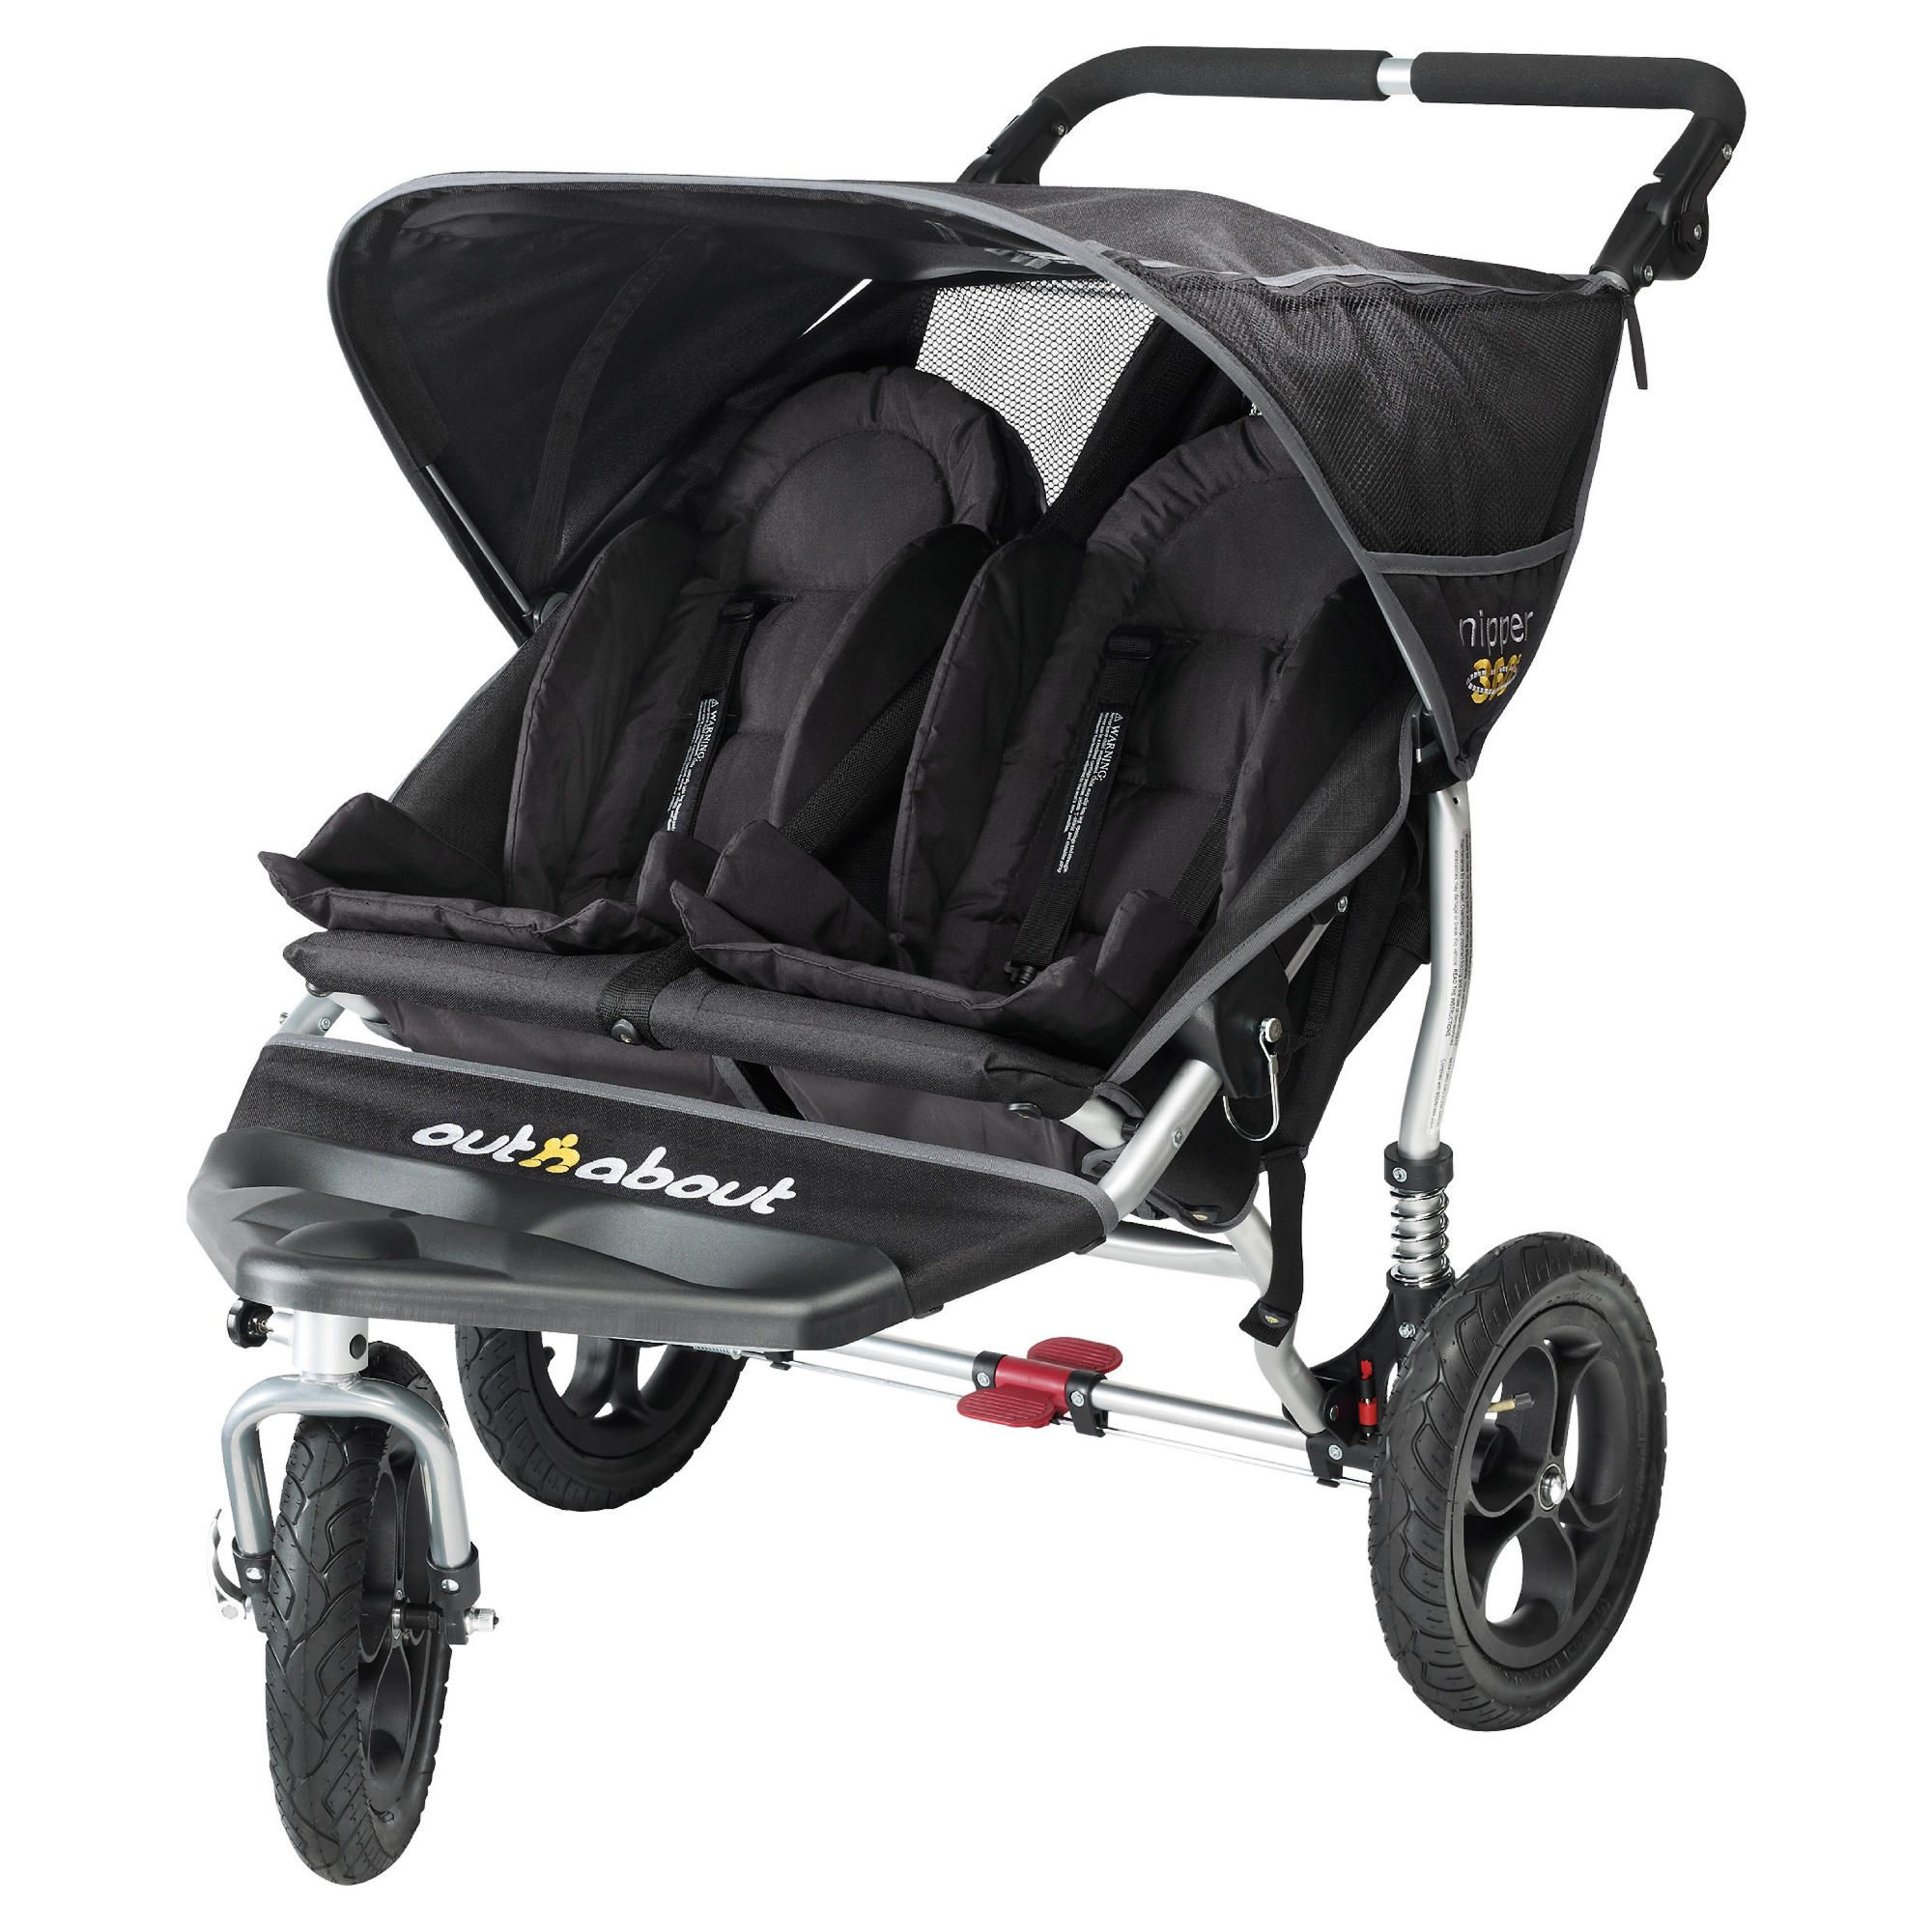 Out 'n' About V2 Nipper 360, 3 wheeler Double Pushchair, Black at Tesco Direct